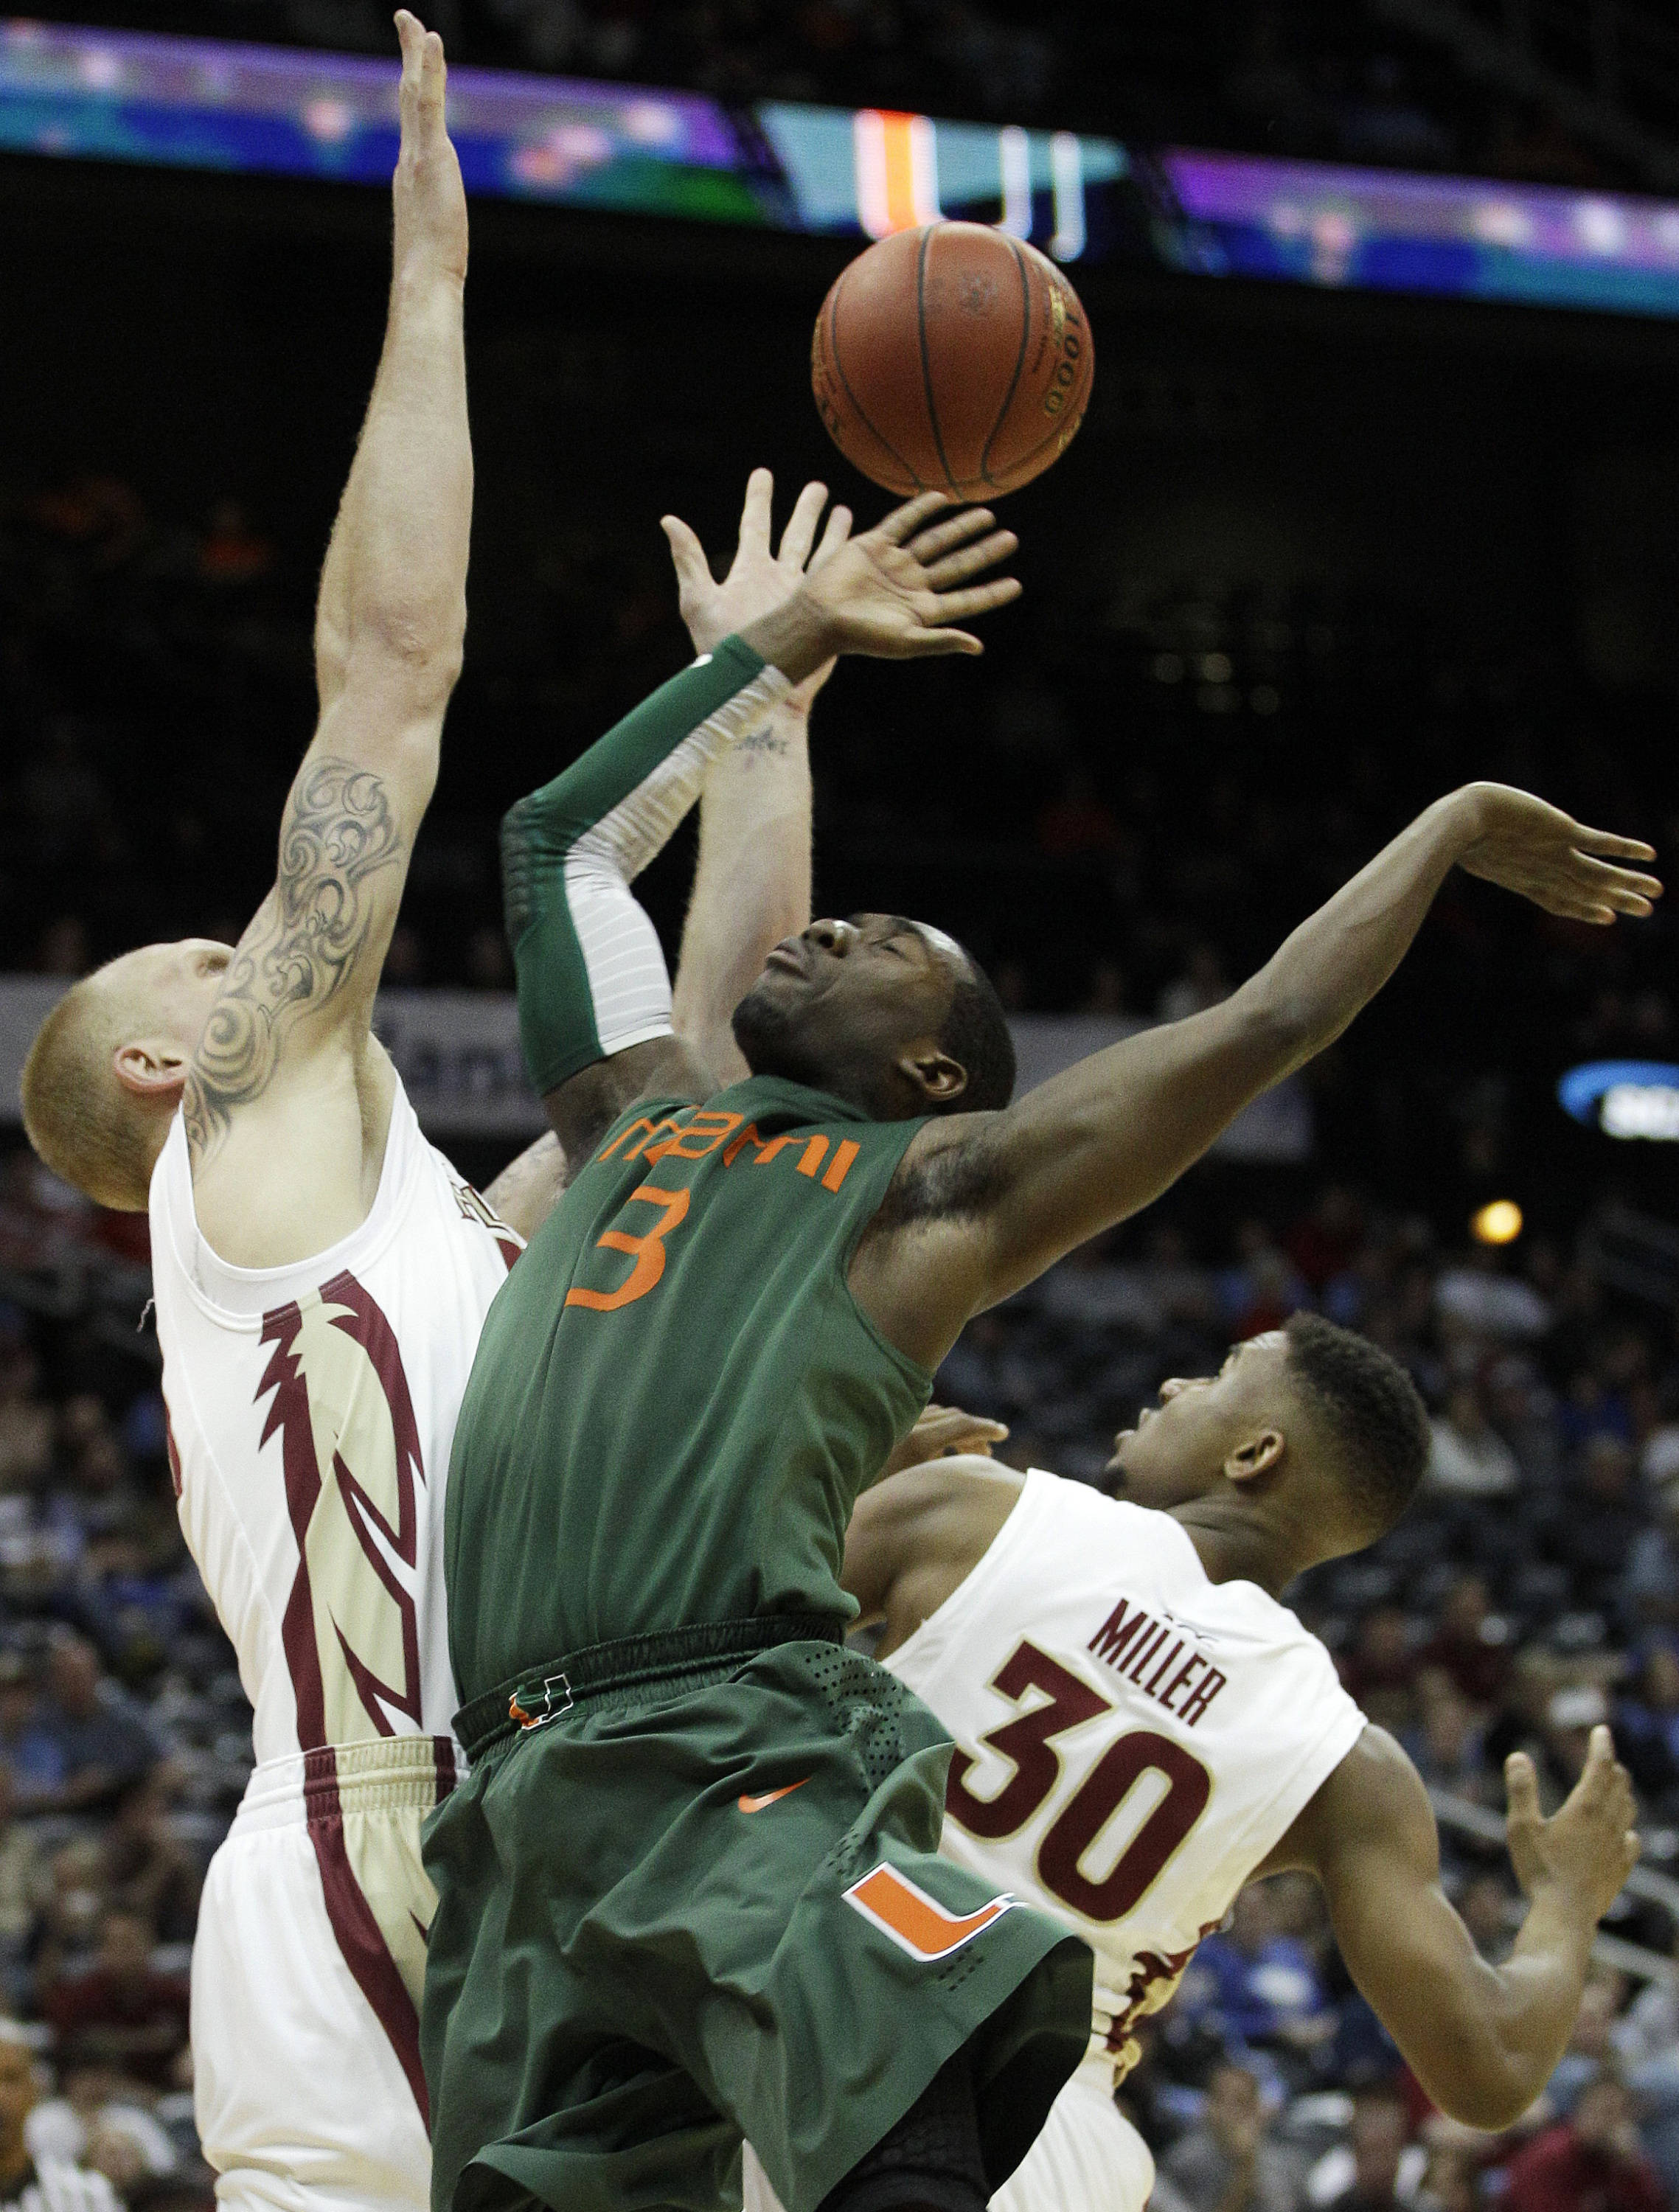 Miami guard Malcolm Grant (3), Florida State center Jon Kreft, left, and Florida State guard Ian Miller (30) vie for a loose ball during the second half of an NCAA college basketball game in the quarterfinals of the Atlantic Coast Conference tournament, Friday, March 9, 2012, in Atlanta. (AP Photo/Chuck Burton)